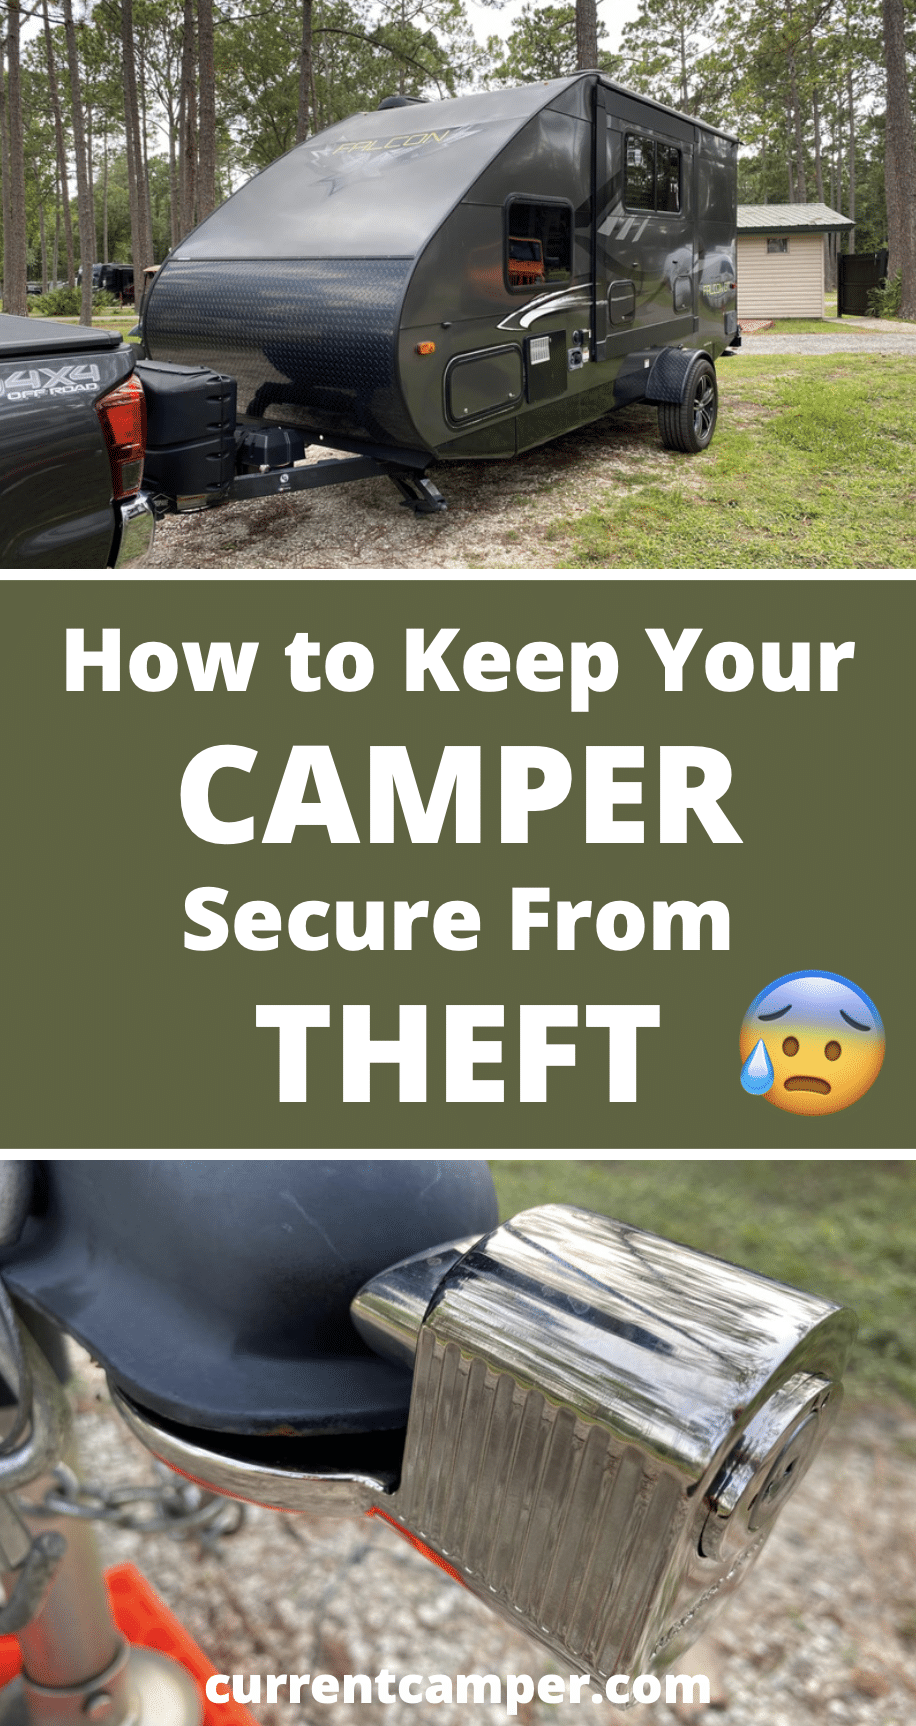 camper camping tips security rv road trip